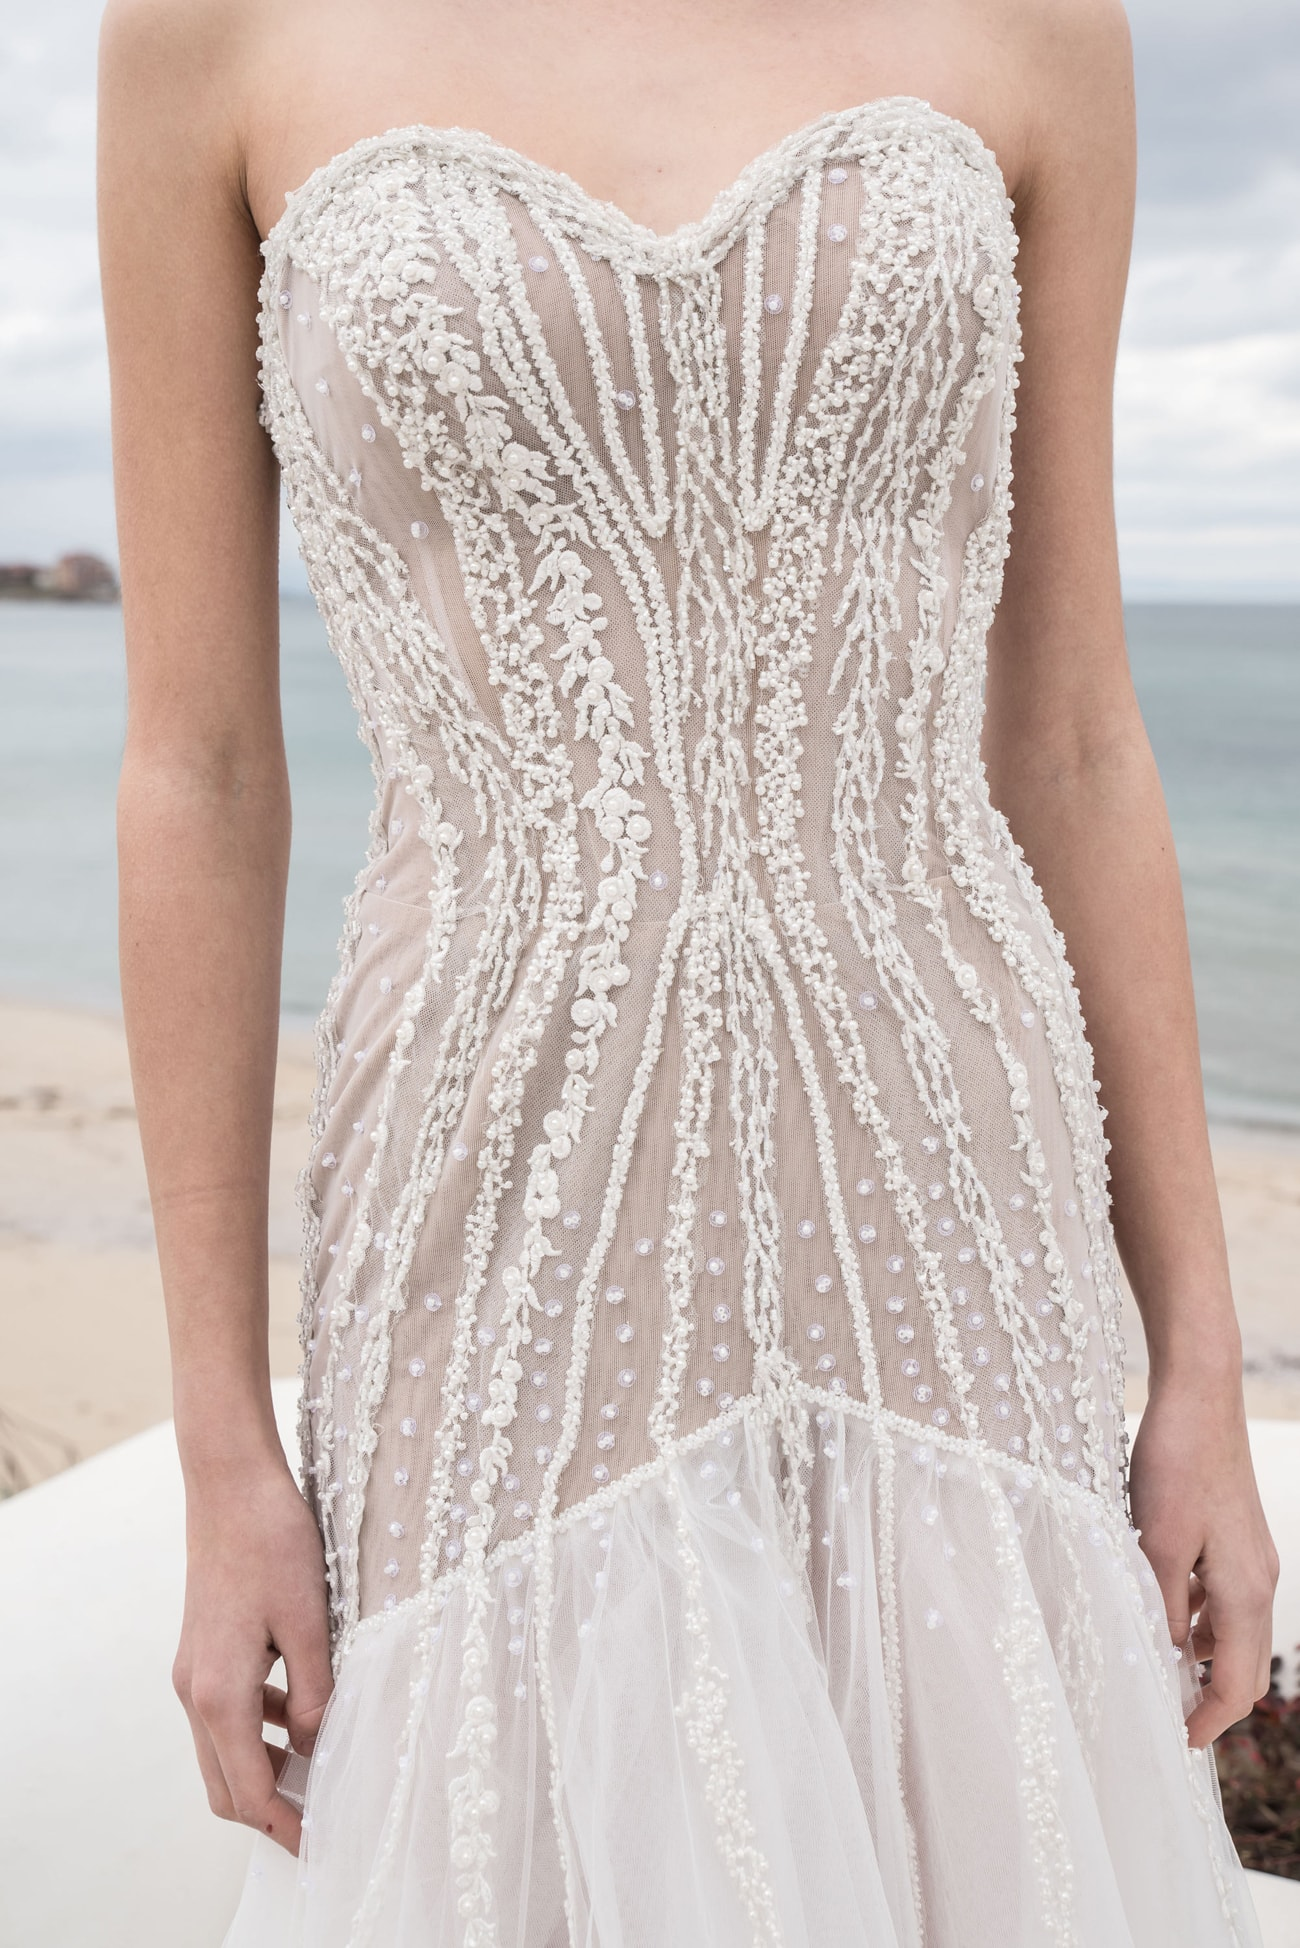 20 Chic  Sheer Wedding Dresses from Etsy  SouthBound Bride